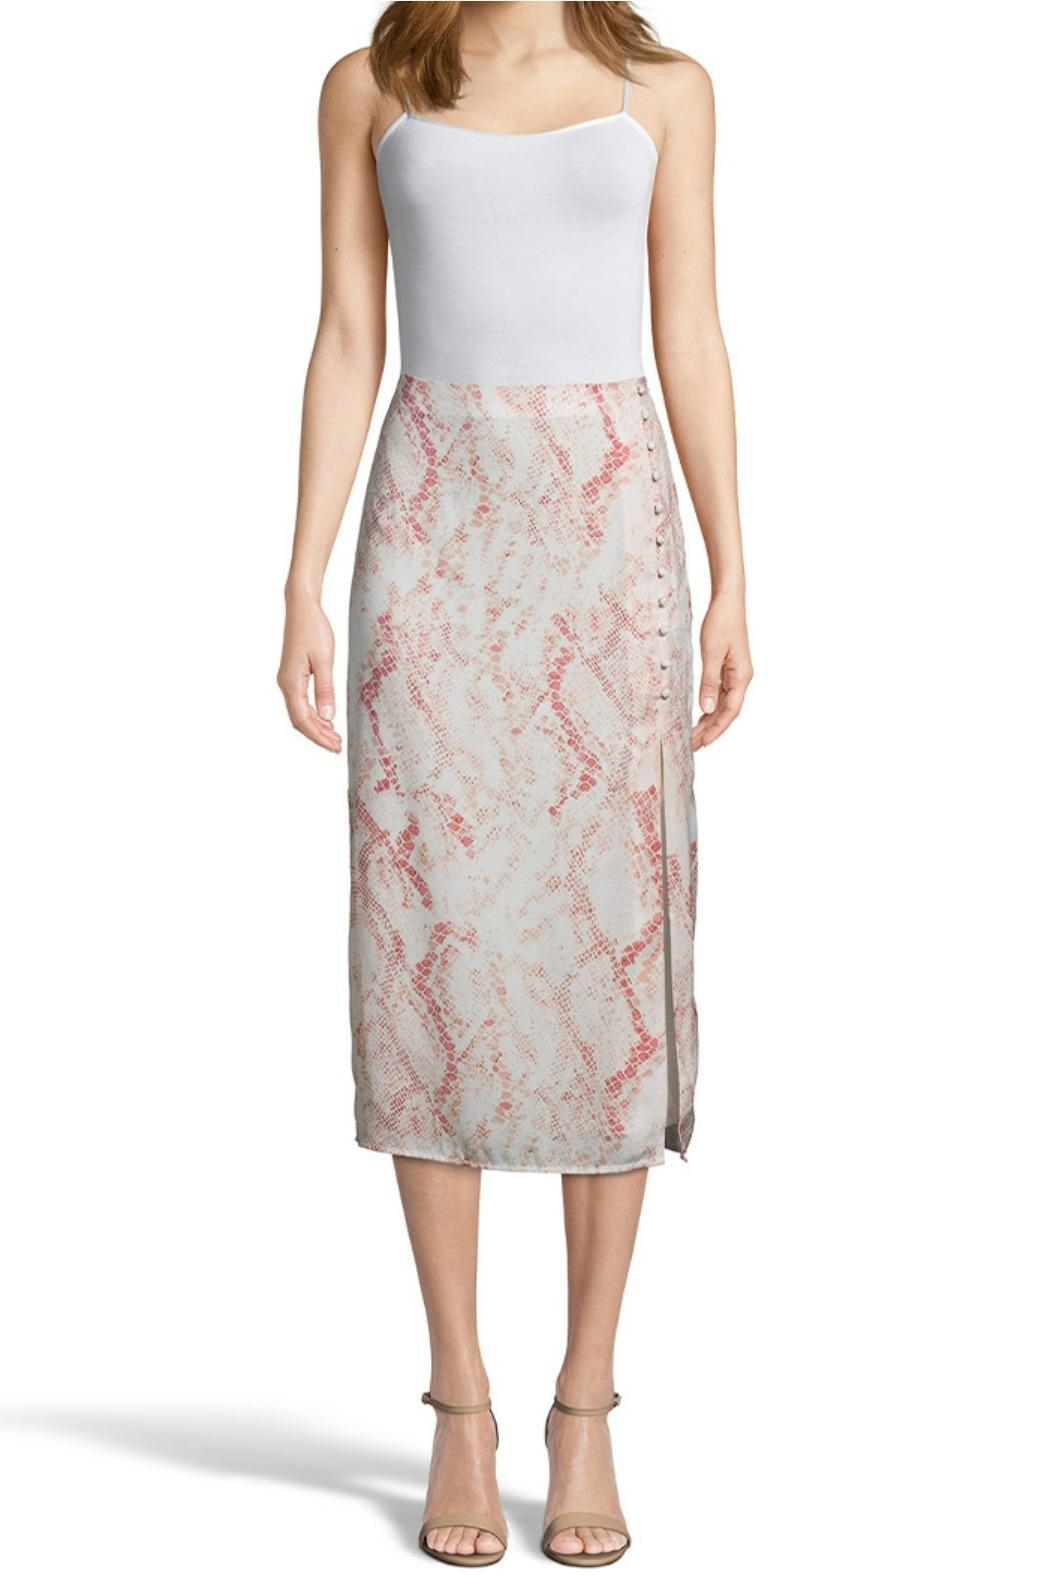 Cupcakes & Cashmere Fairfax Midi Skirt - Front Cropped Image